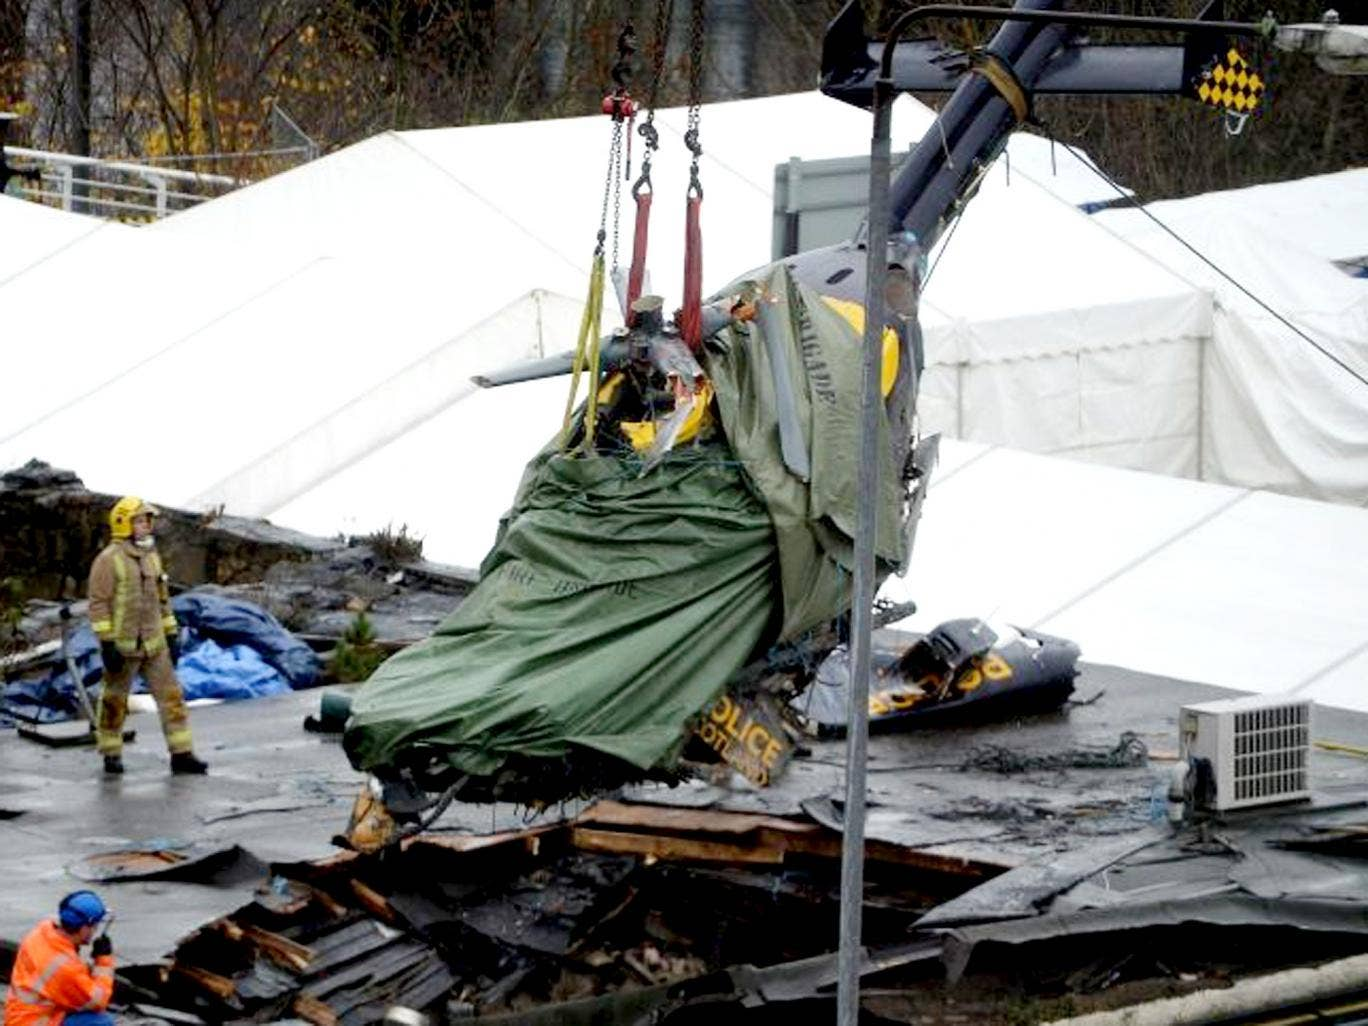 Rescuers lift the police helicopter wreckage from the roof of the The Clutha Pub in Glasgow, Scotland